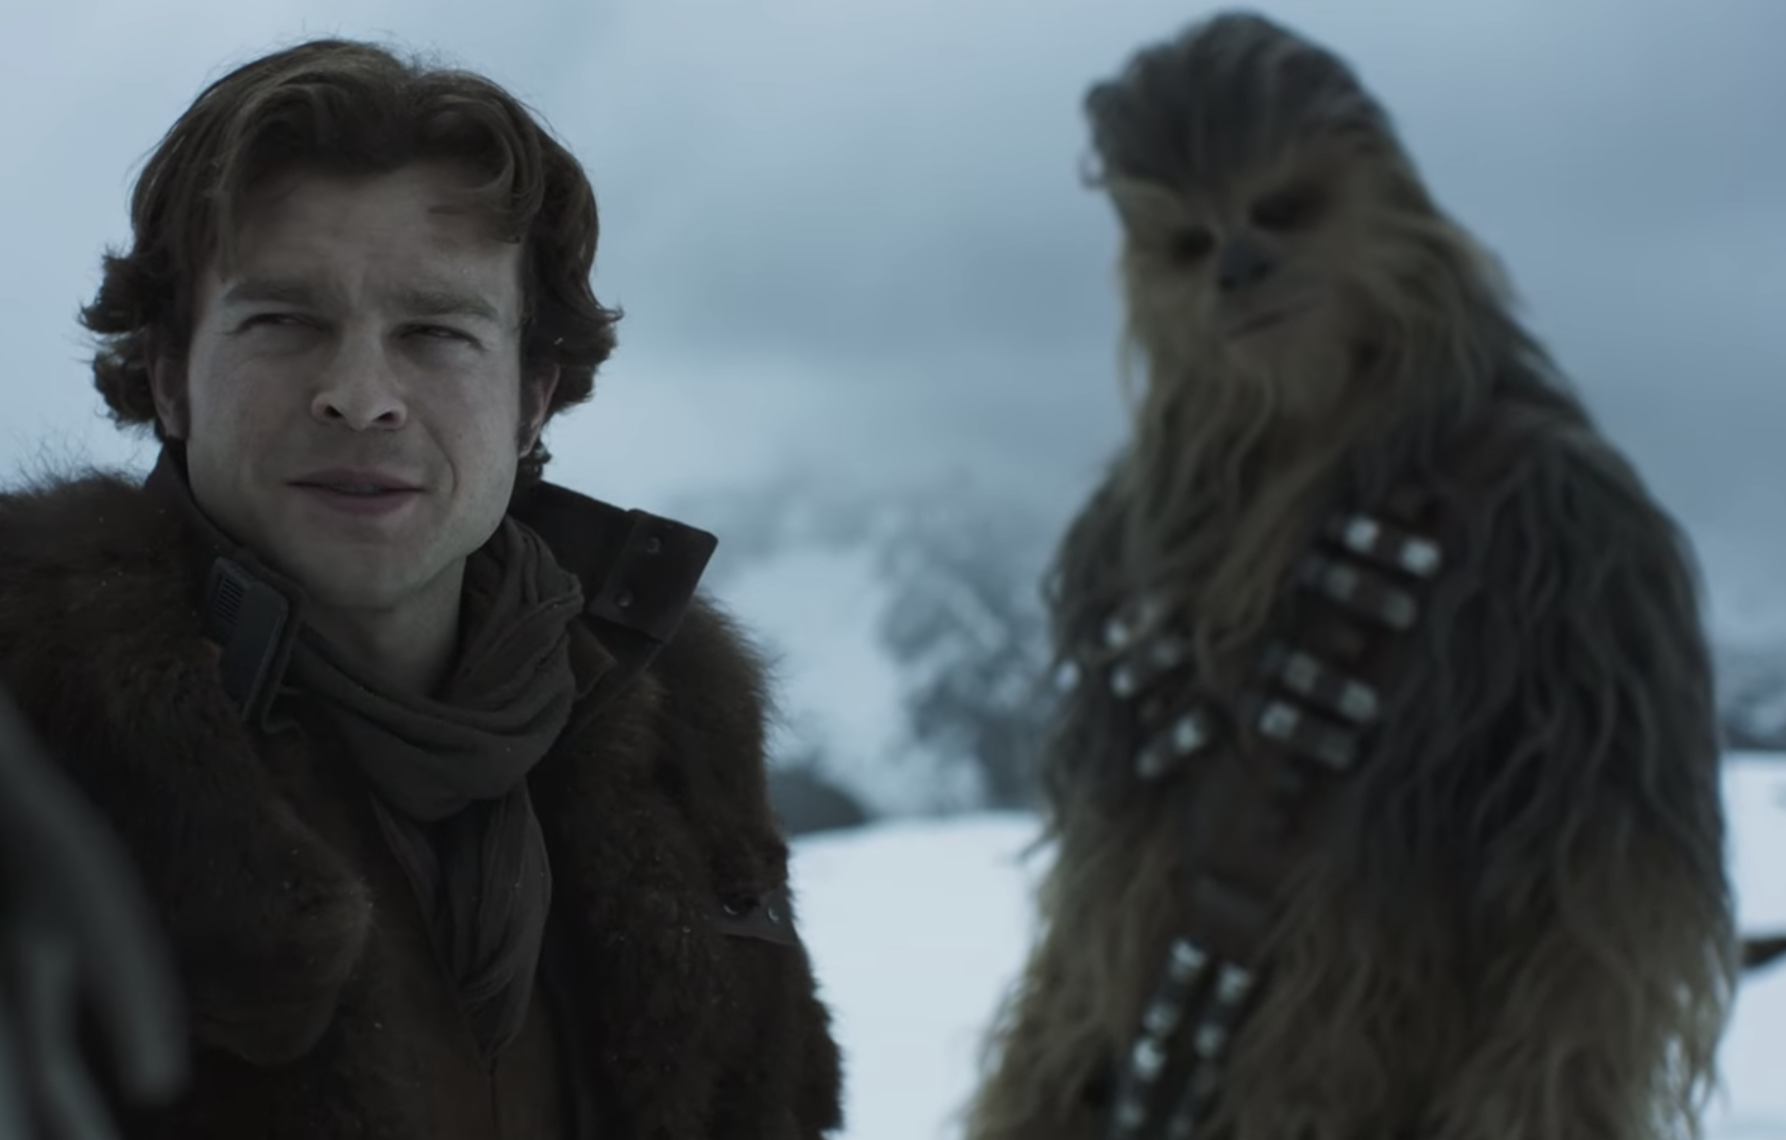 The Han Solo trailer is cool, but where is our stand-alone Emilia Clarke Star Wars movie?